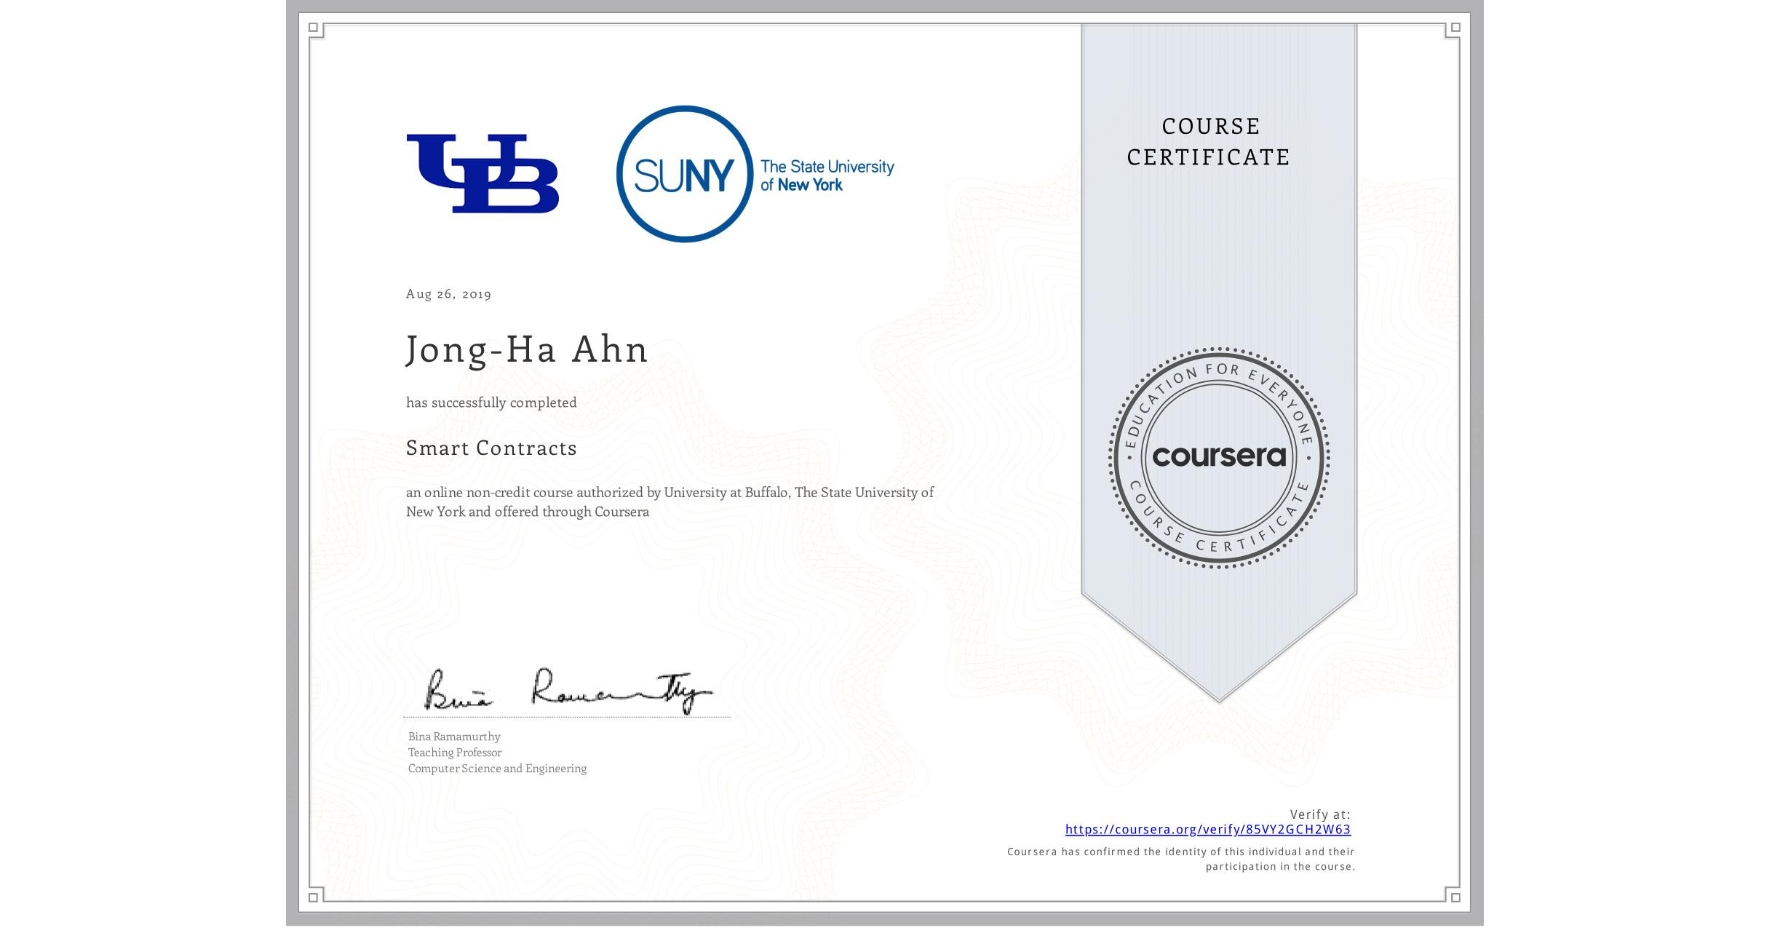 View certificate for Jong-Ha Ahn, Smart Contracts, an online non-credit course authorized by University at Buffalo & The State University of New York and offered through Coursera